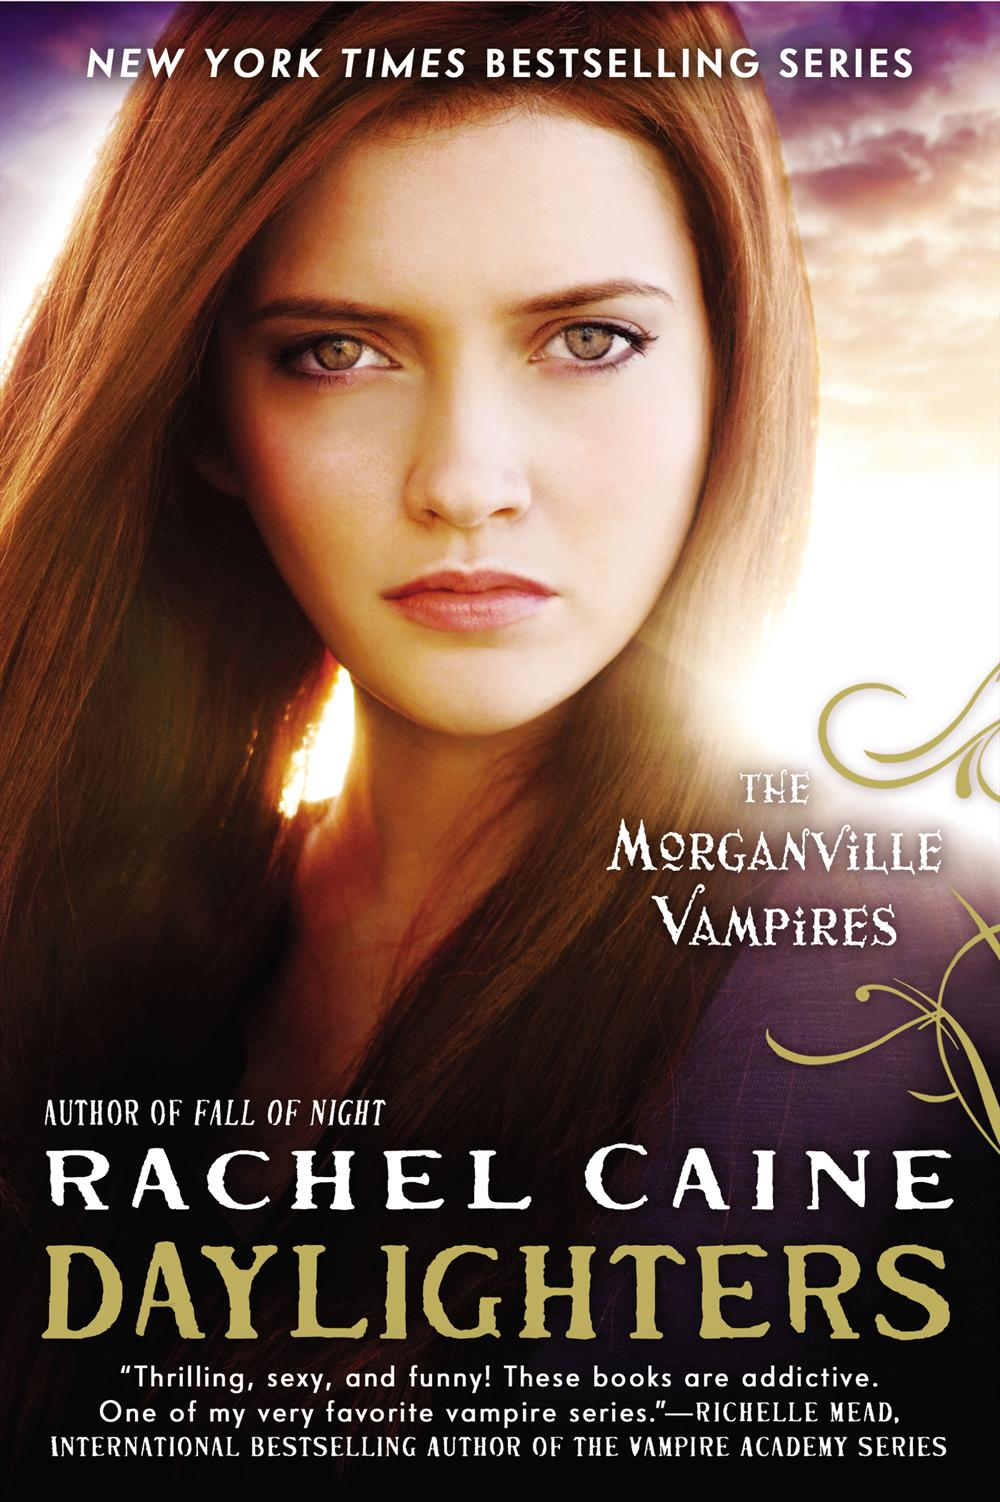 Daylighters Rachel Caine The Morganville Vampires